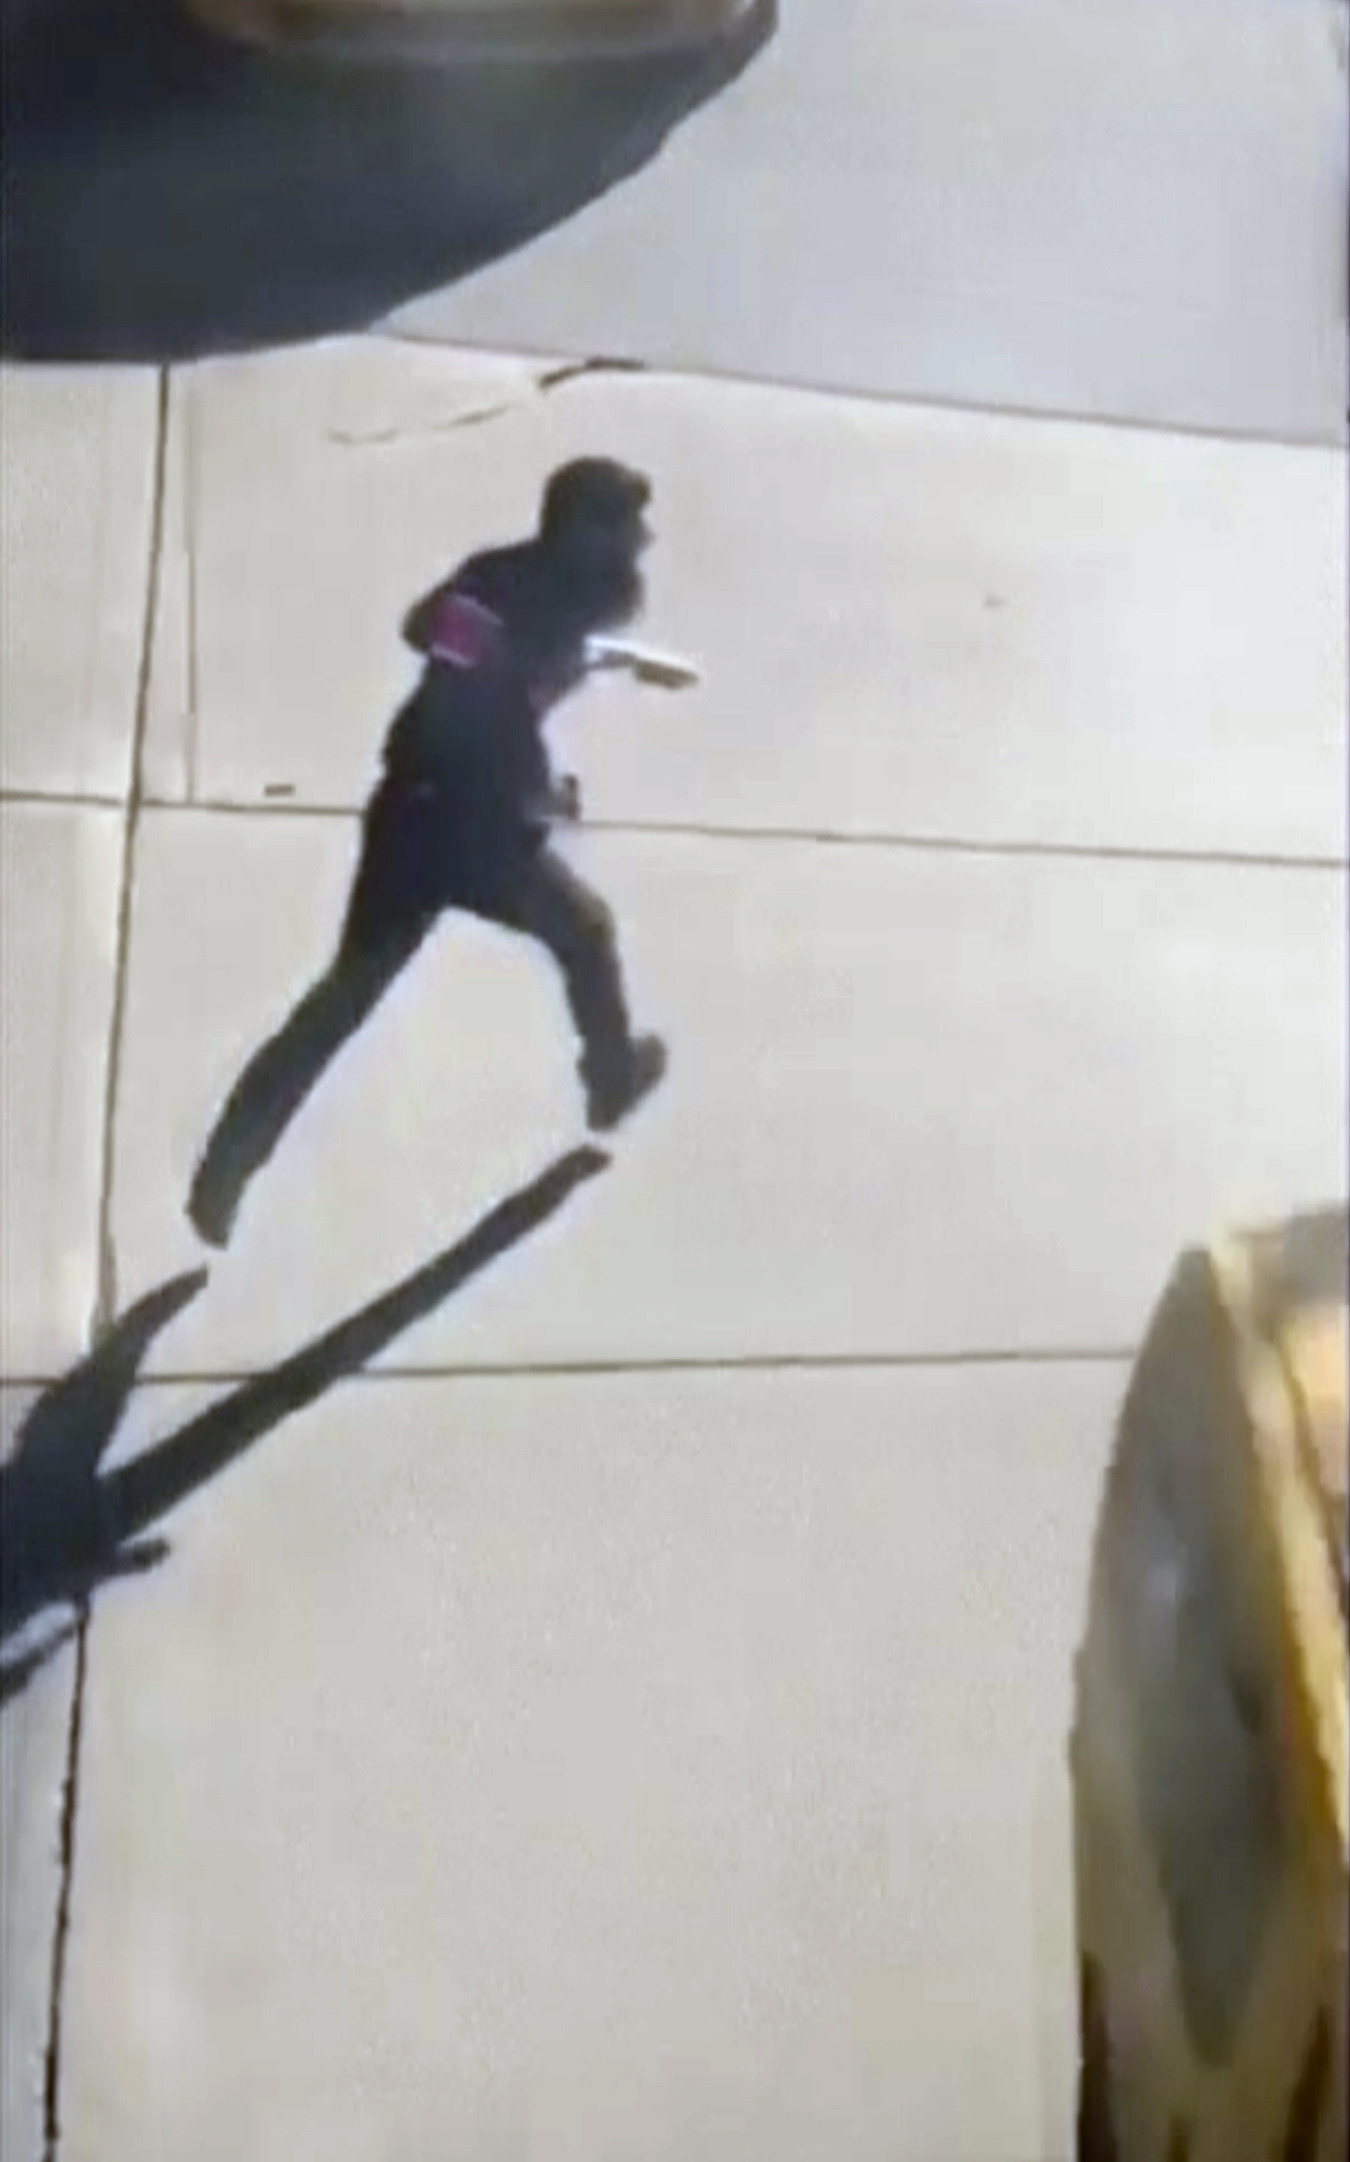 This image made from a video provided by Tawhid Kabir shows the suspect in a deadly attack running across the street with a fake gun in each hand on Tuesday, Oct. 31, 2017, in New York. The man mowed down pedestrians and cyclists along a busy bike path near the World Trade Center memorial on Tuesday, before he was shot in the abdomen by police after jumping out of the truck, authorities said. (You